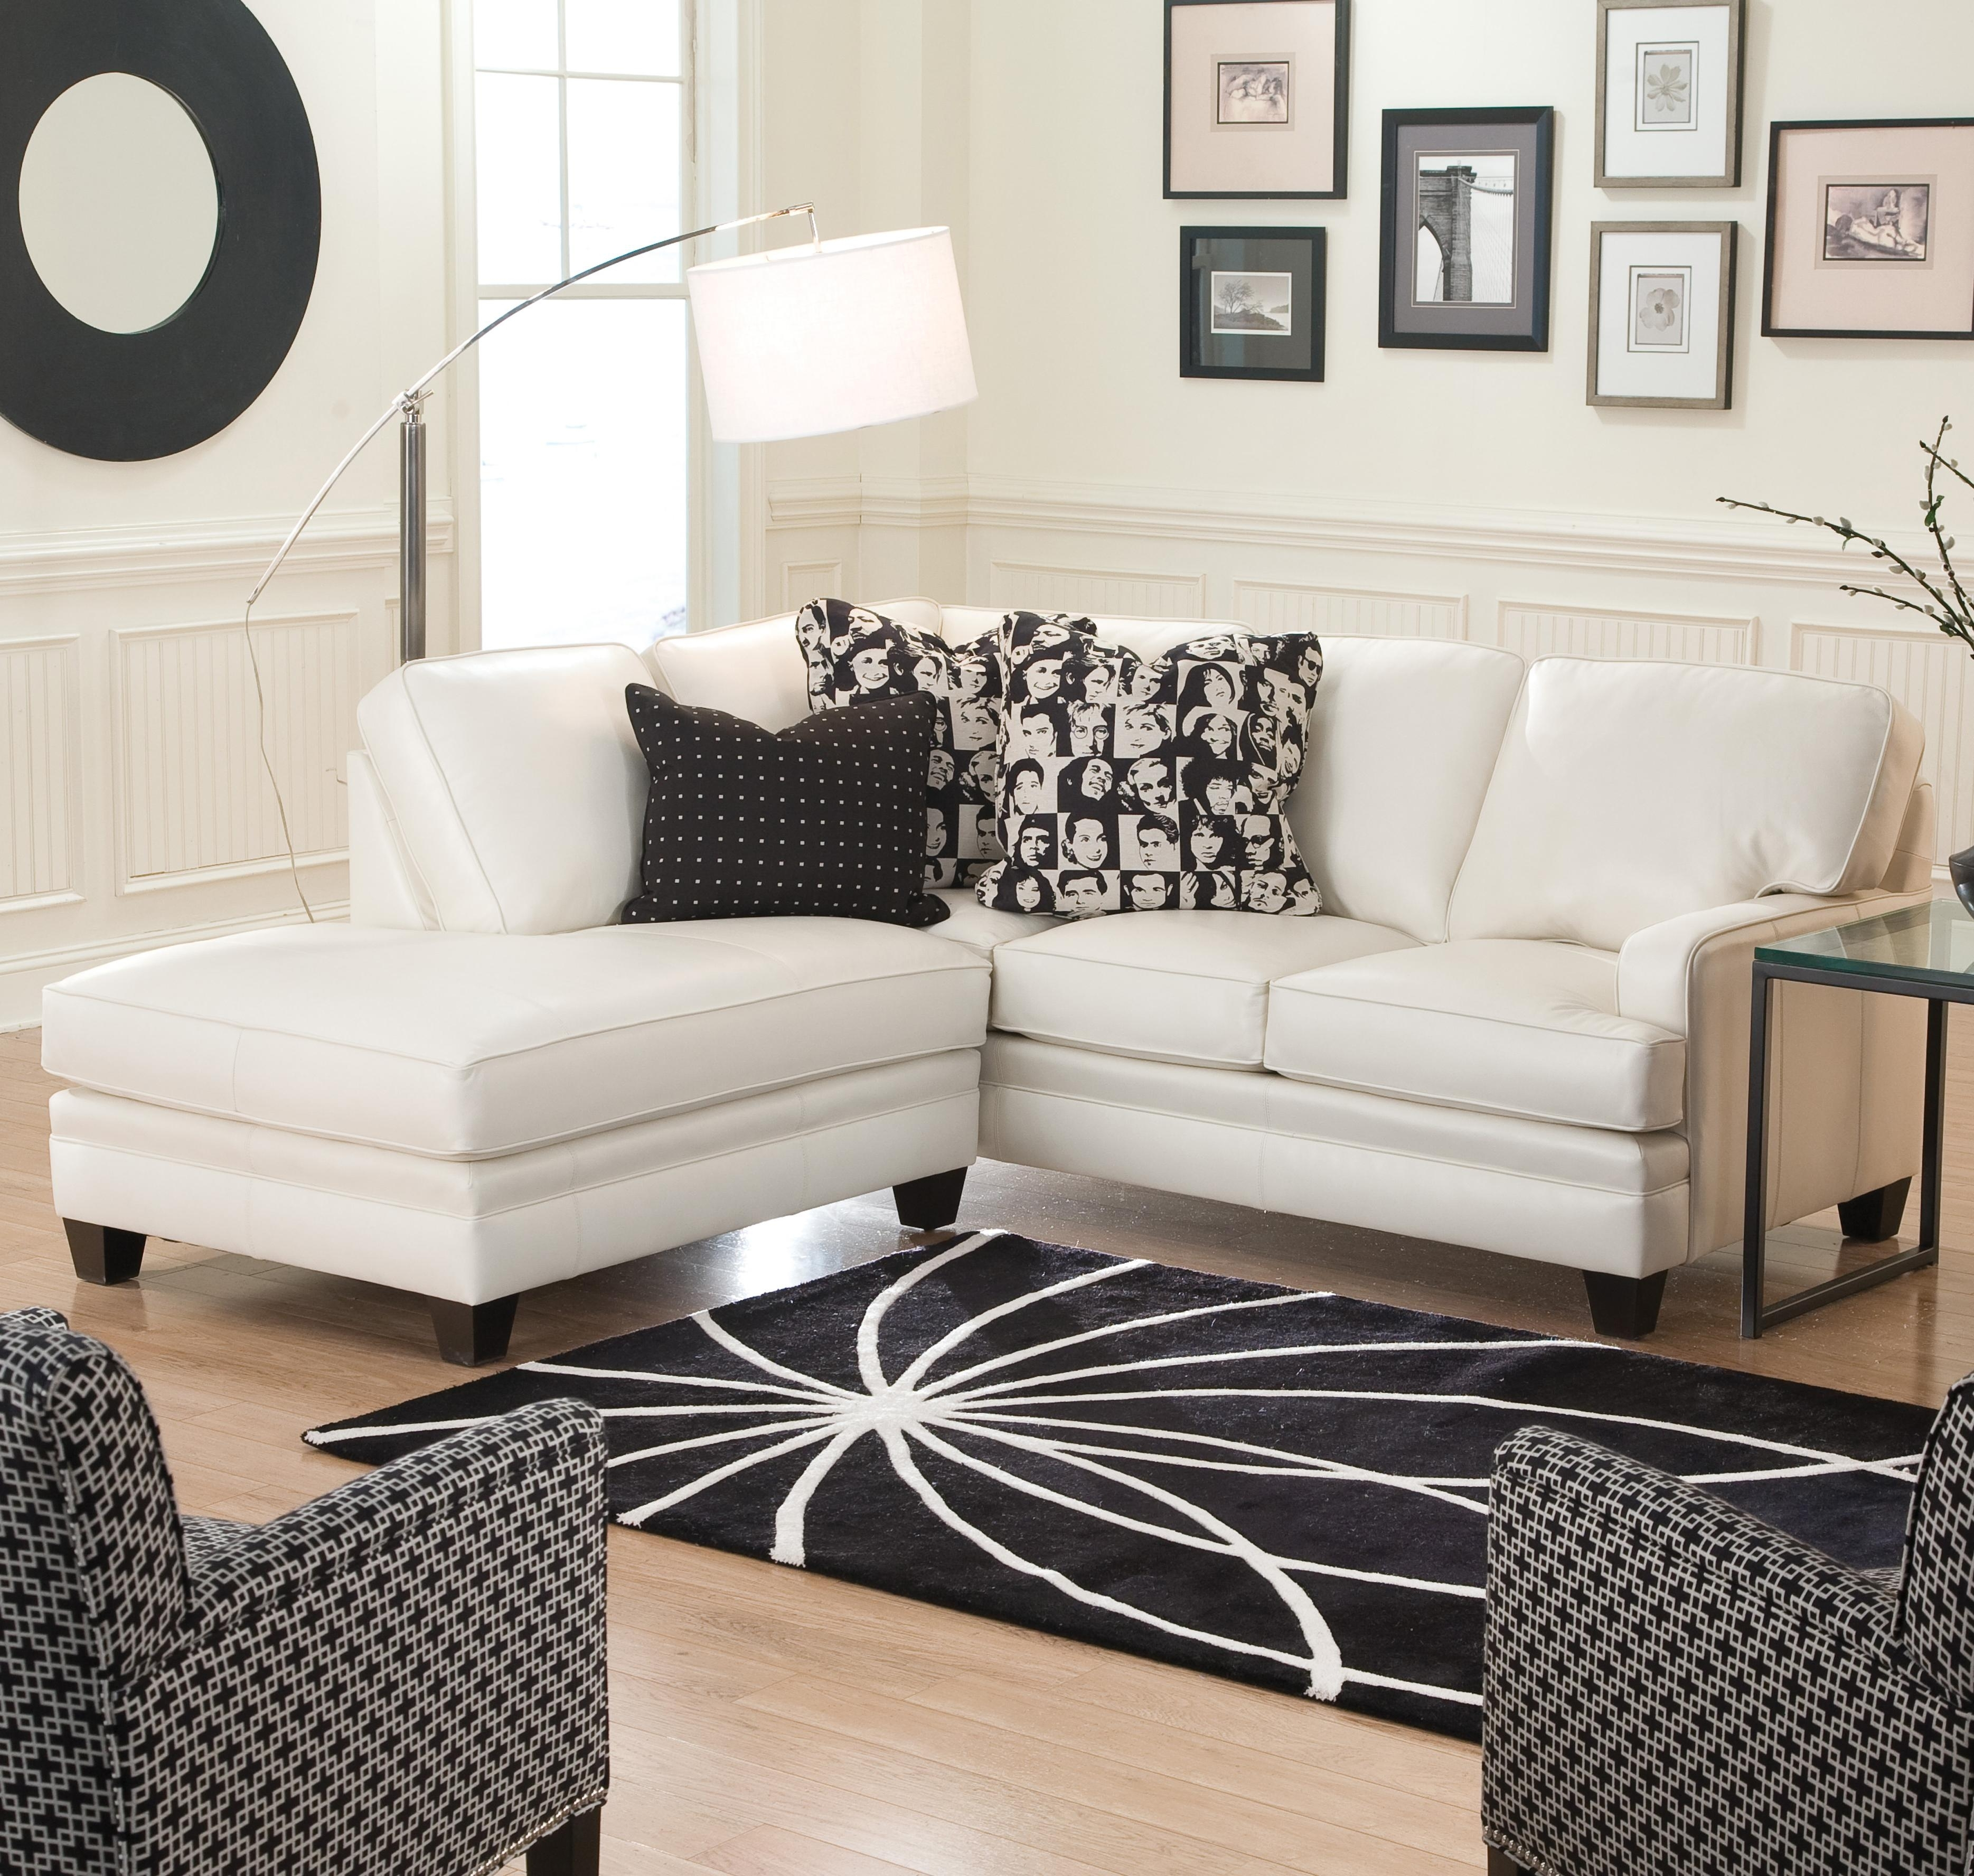 Small Sectional Sofa With Contemporary Looksmith Brothers | Wolf In Small Sectional Sofas (View 10 of 10)